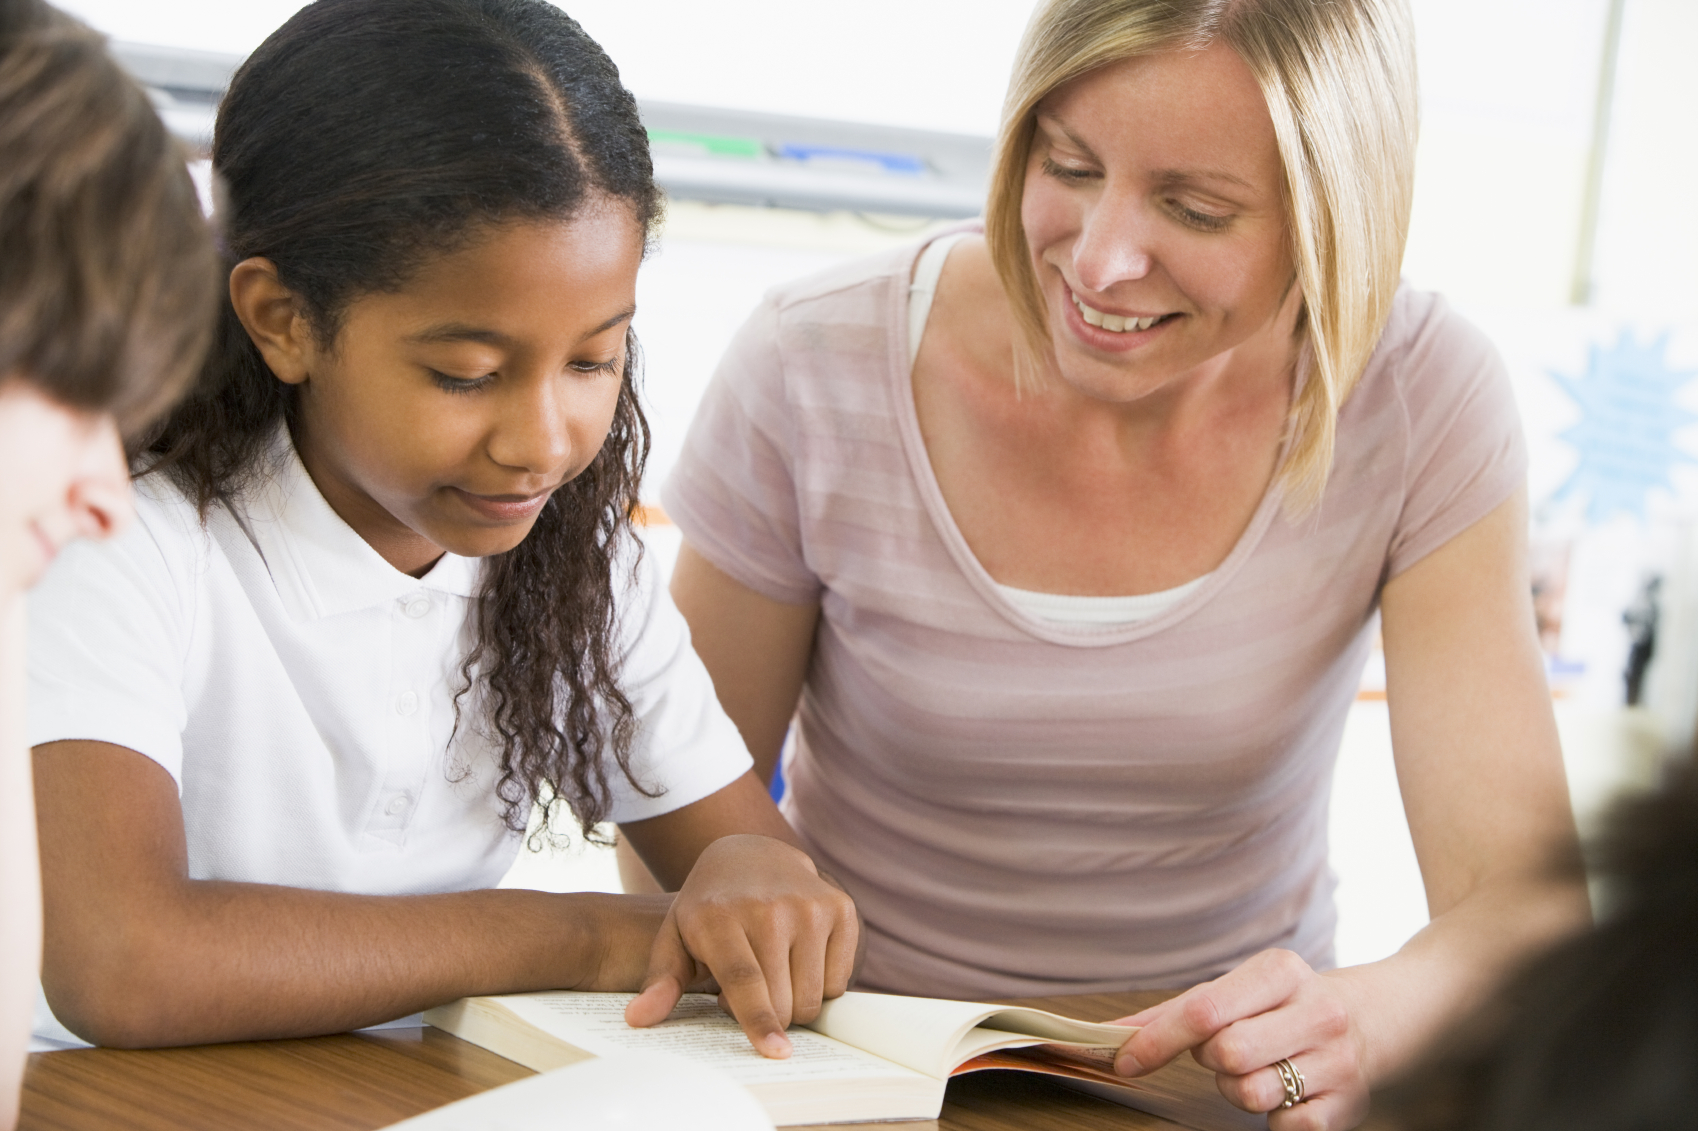 Image of a Schoolgirl and teacher reading a book in class